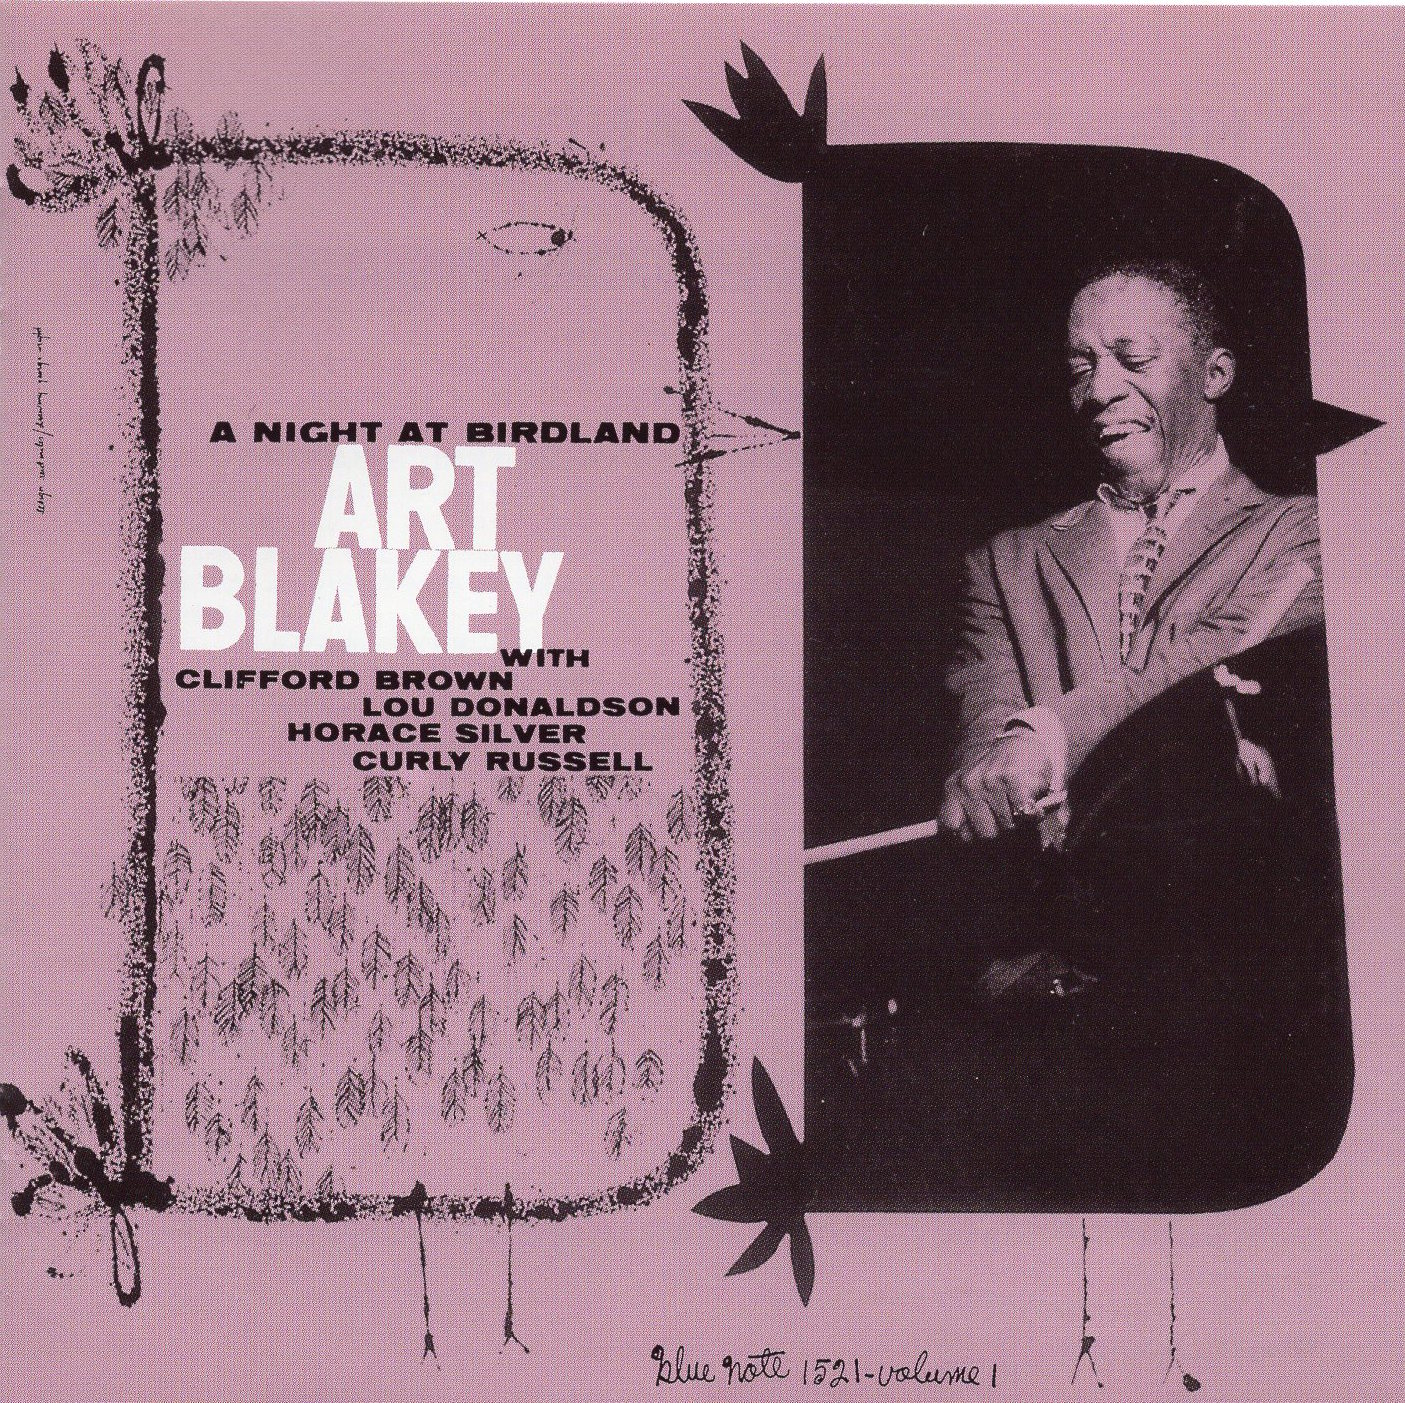 """A Night At Birdland"" Art Blakey"